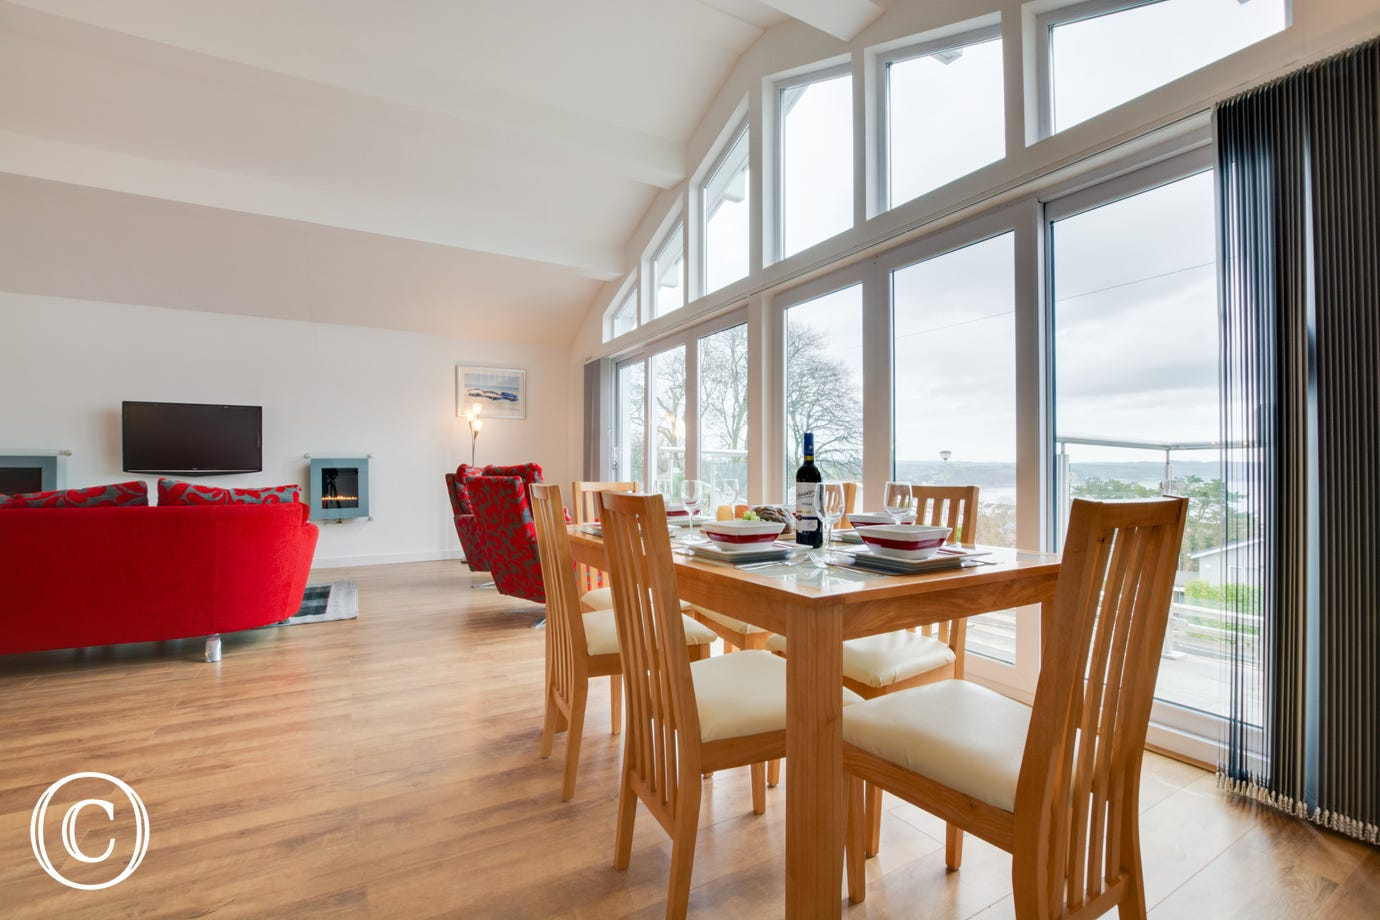 Bungalow in Saundersfoot for 5. Dining area